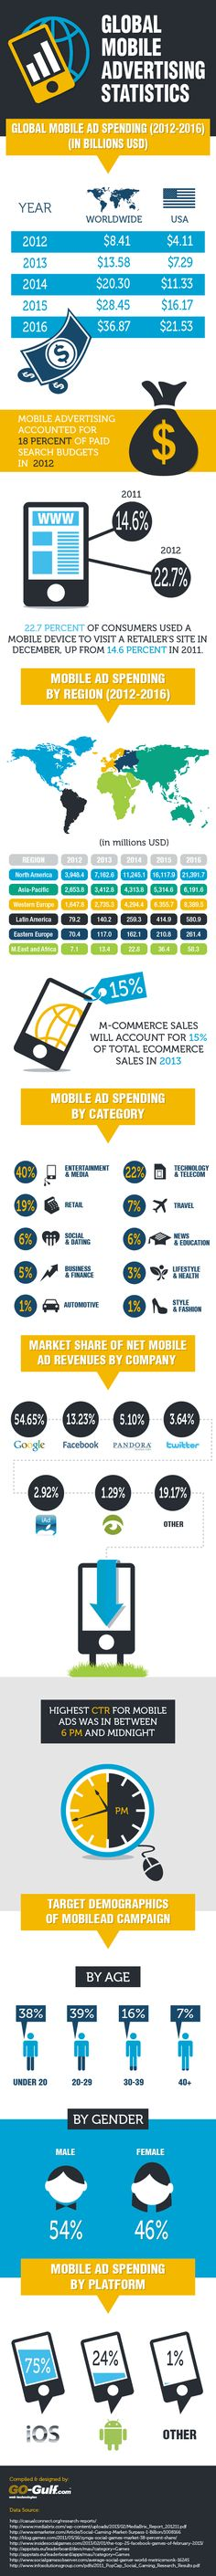 Statistics and trends of mobile advertising spending. How much advertisers are spending on mobile ads